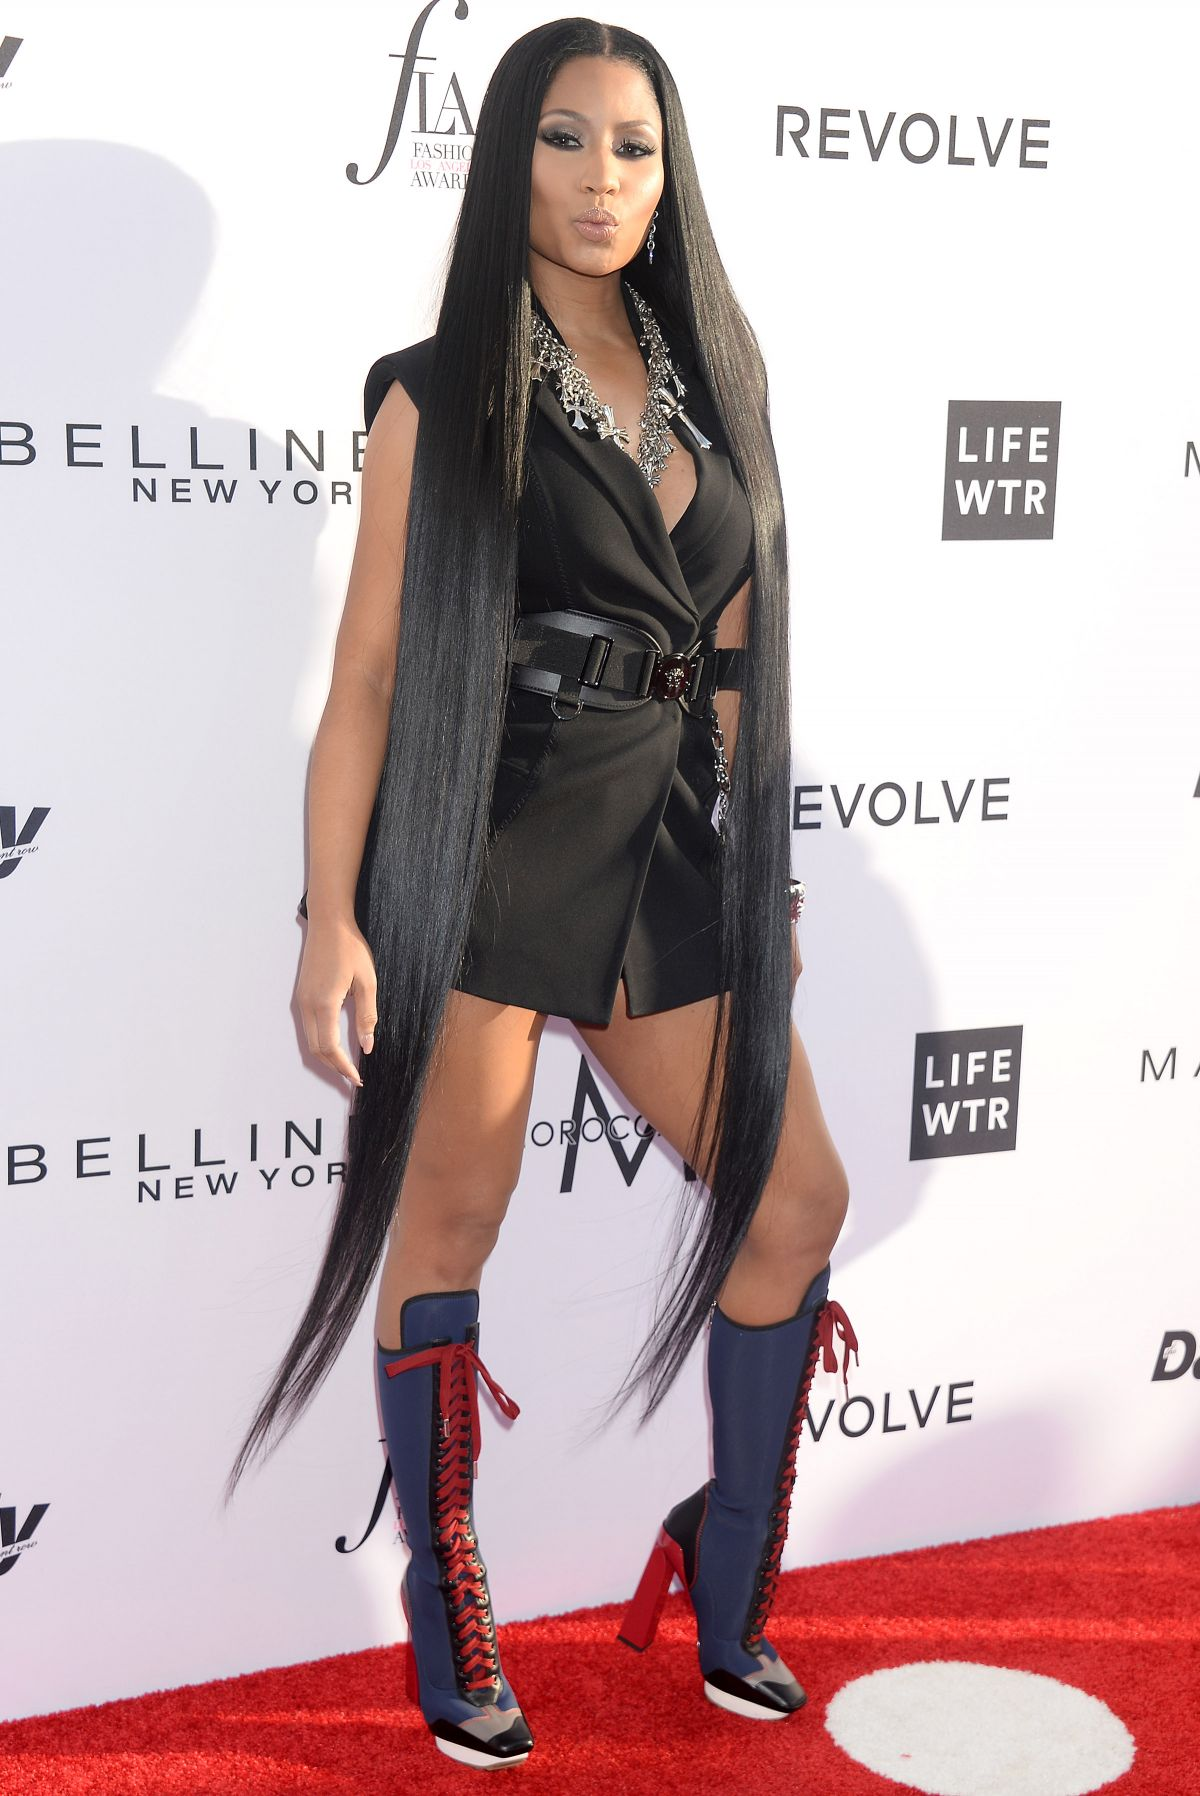 Nicki Minaj At Daily Front Row's 3rd Annual Fashion Los Angeles Awards – West Hollywood   nicki-minaj-at-daily-front-row-s-3rd-annual-fashion-los-angeles-awards-west-hollywood_1